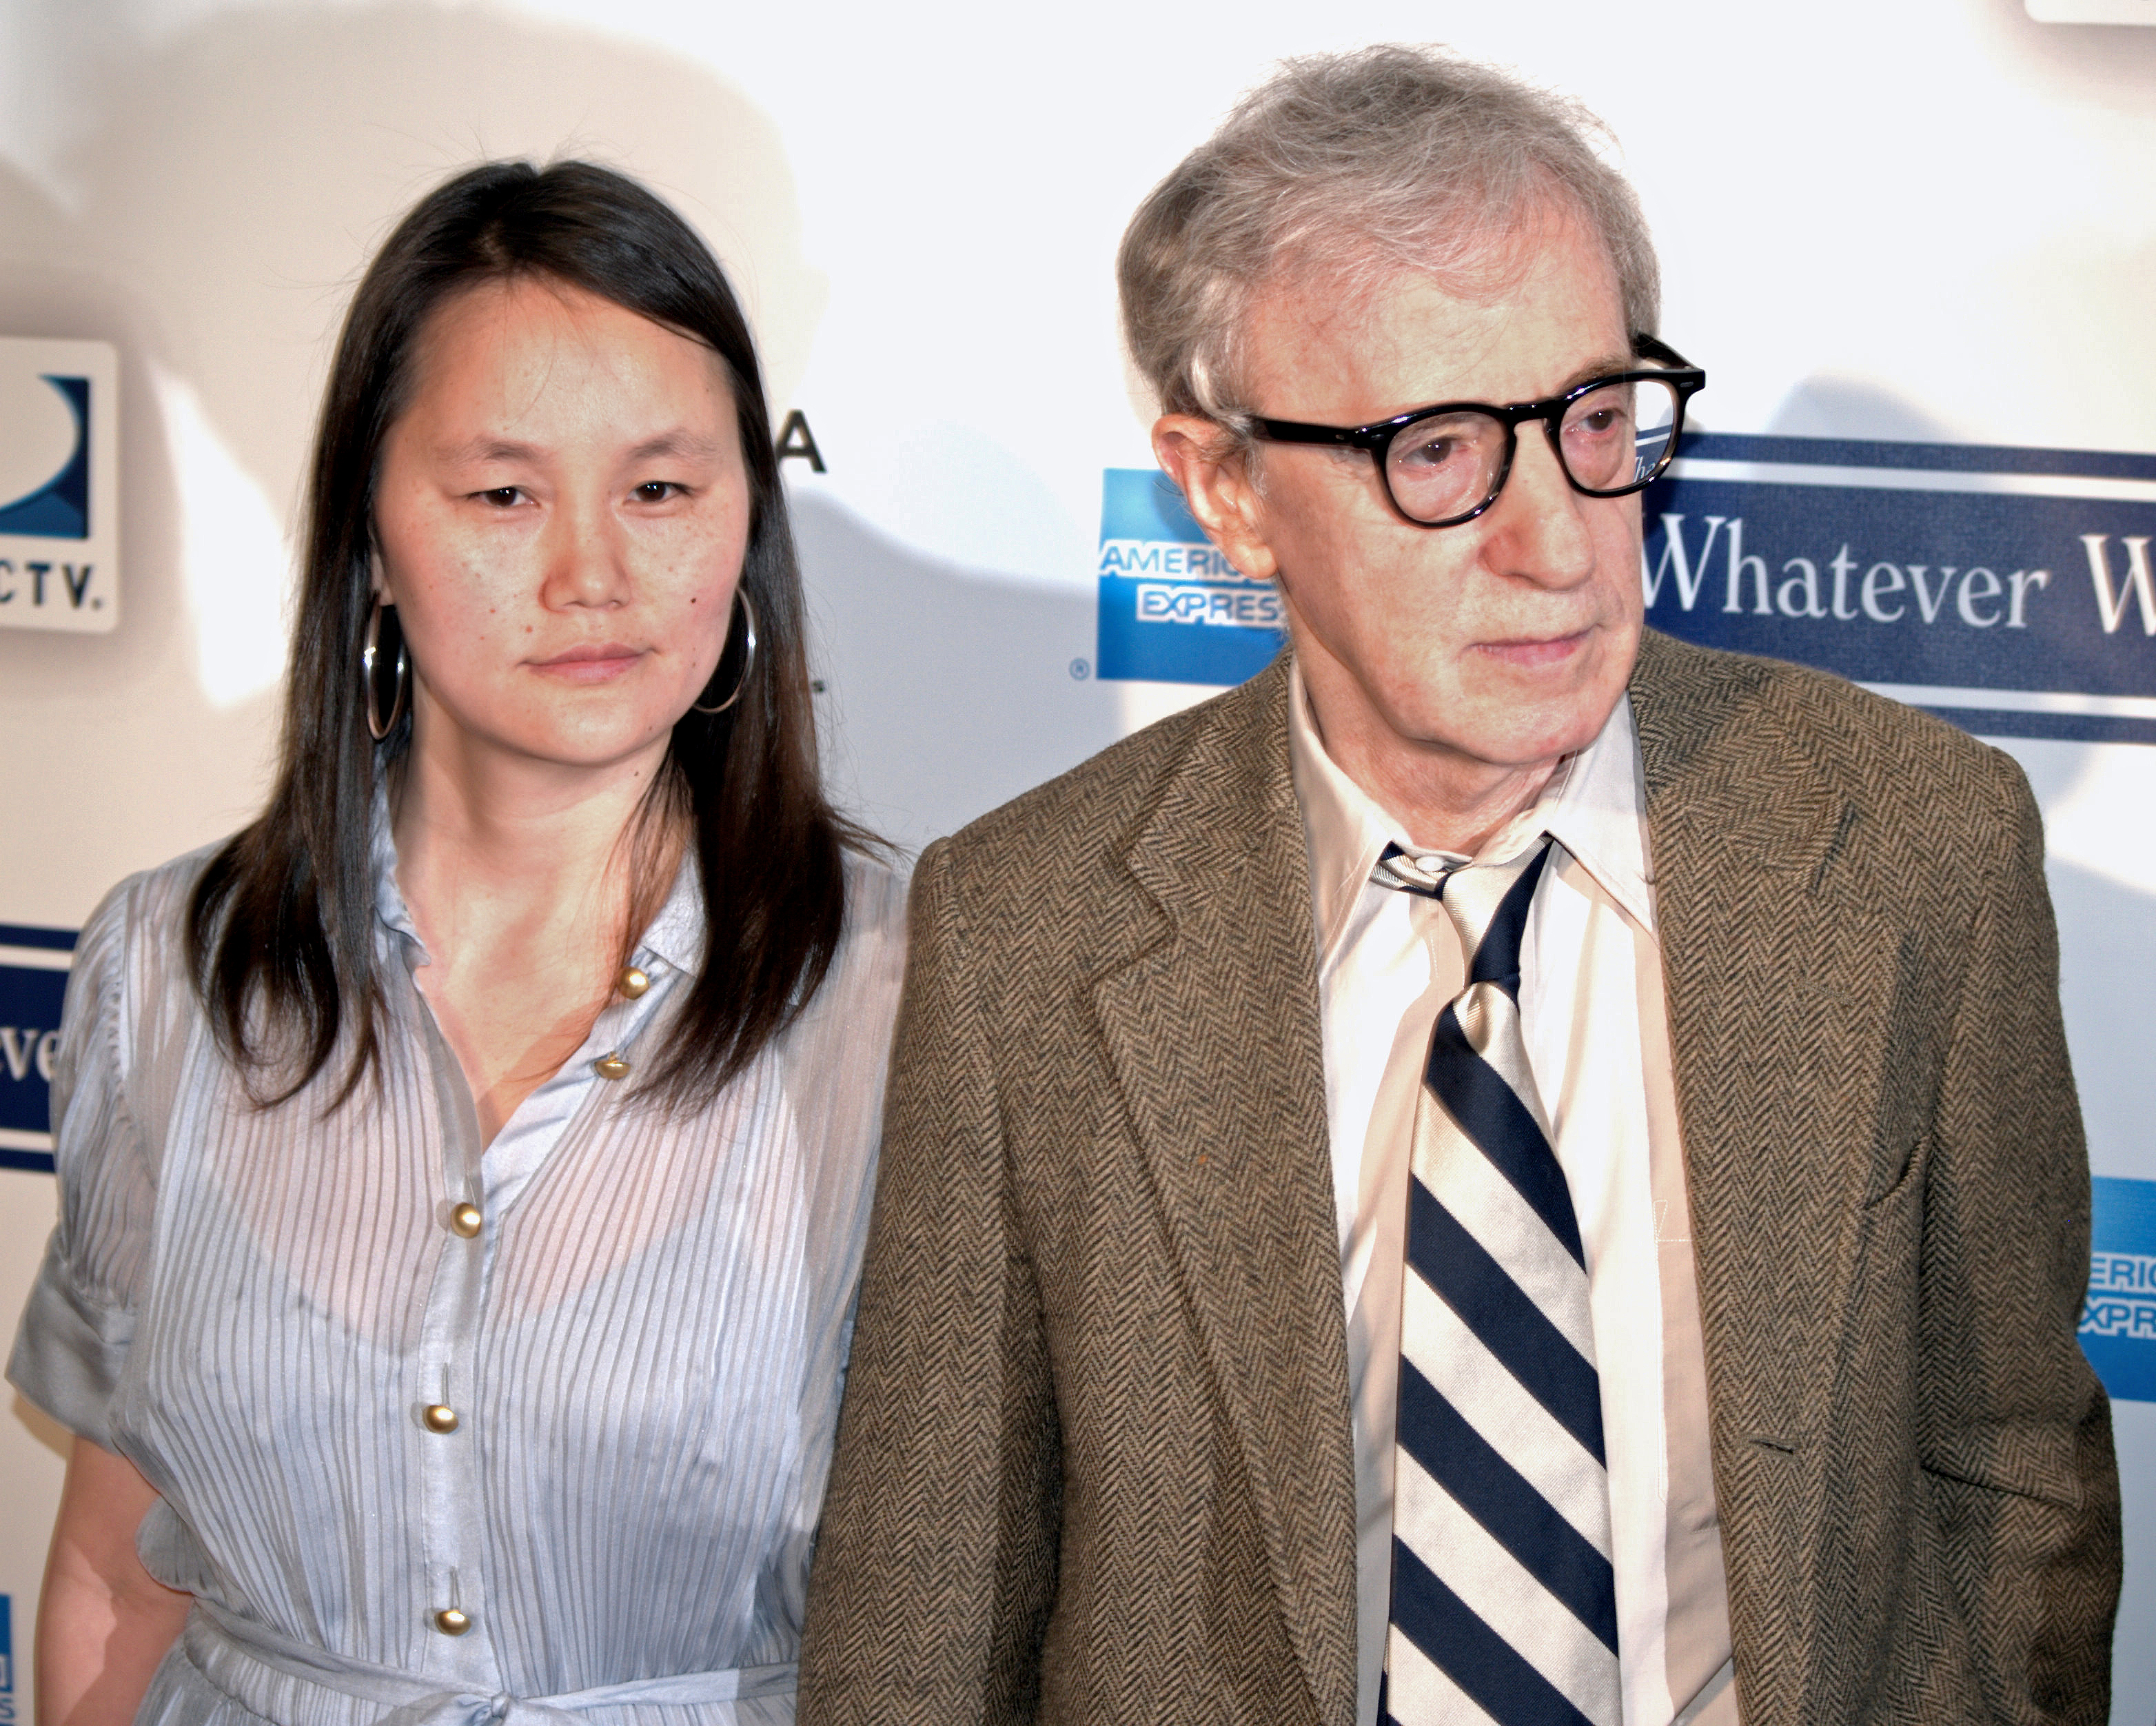 http://upload.wikimedia.org/wikipedia/commons/6/65/Soon_Yi_Previn_and_Woody_Allen_at_the_Tribeca_Film_Festival.jpg